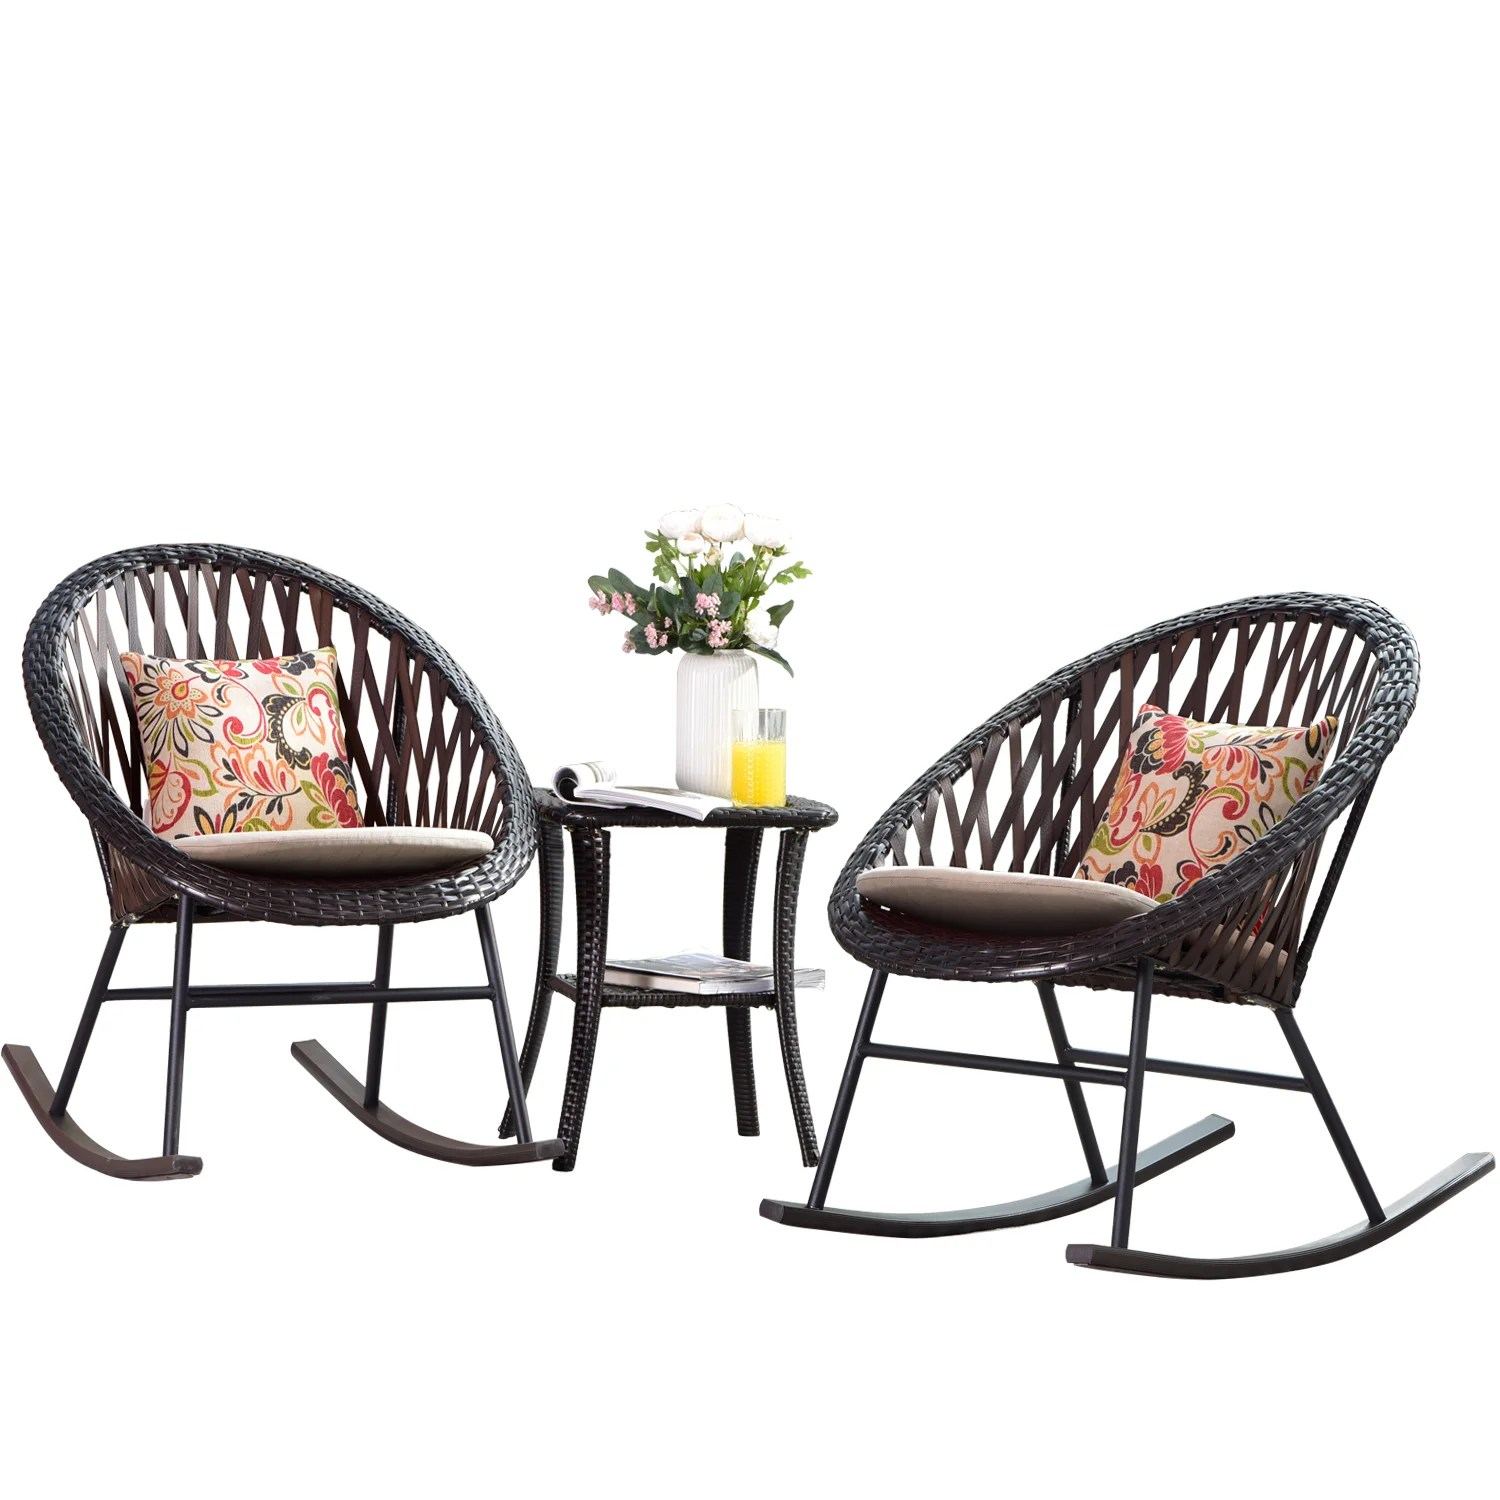 roberta 3 piece outdoor rocking chair set with cushion